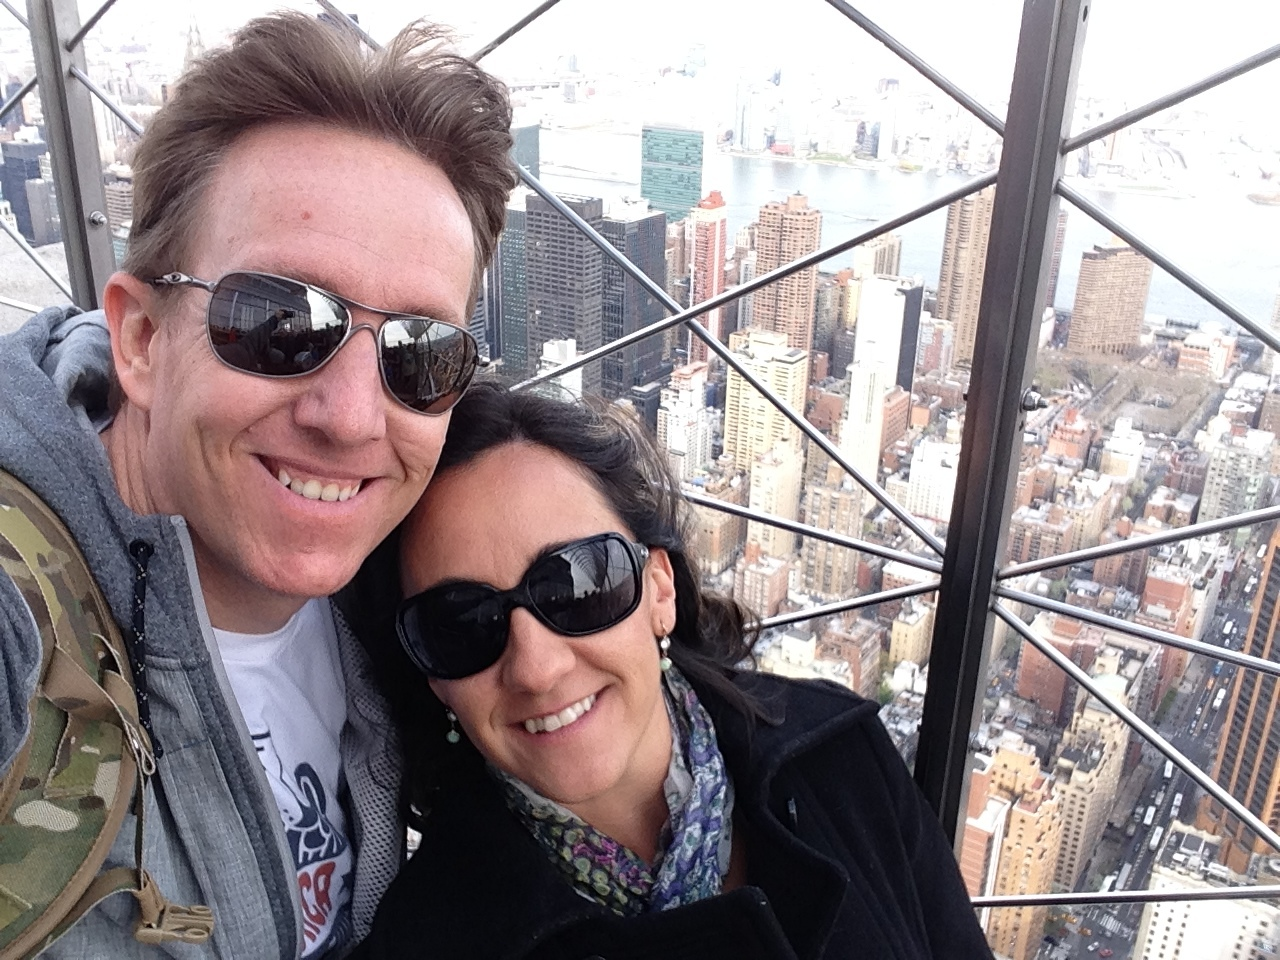 Me and my wife, Erica, in New York City.